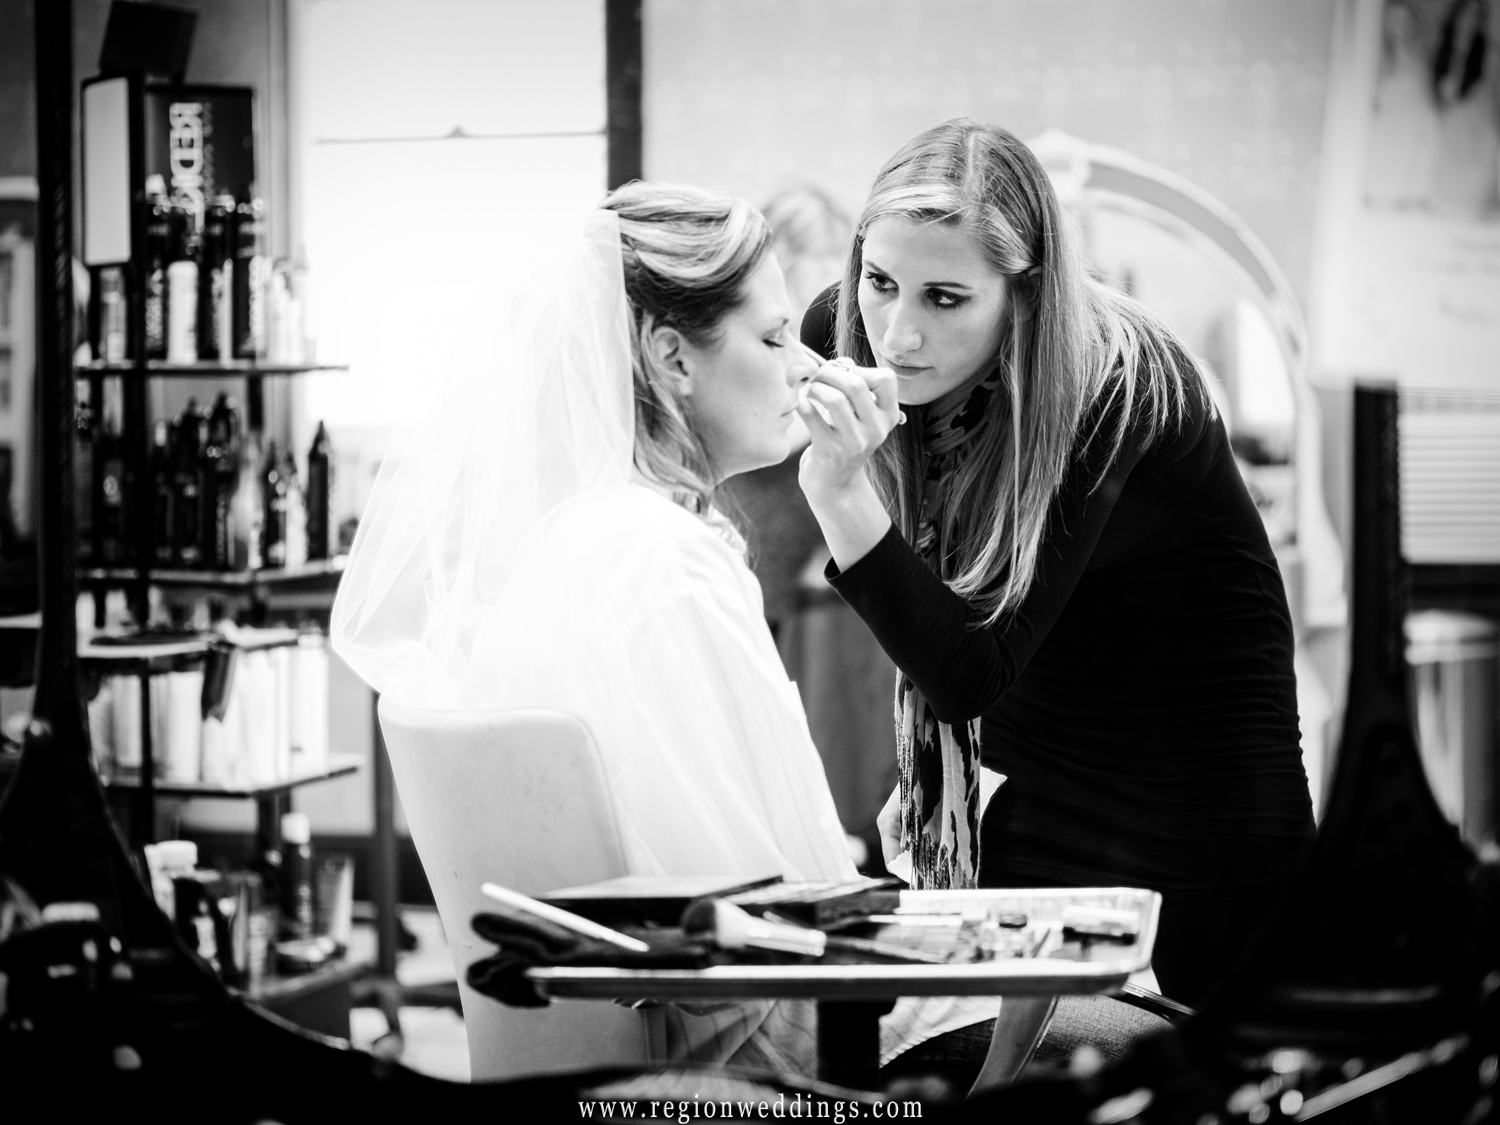 The bride gets her make up done at Downtown Hair Studio in Lowell.